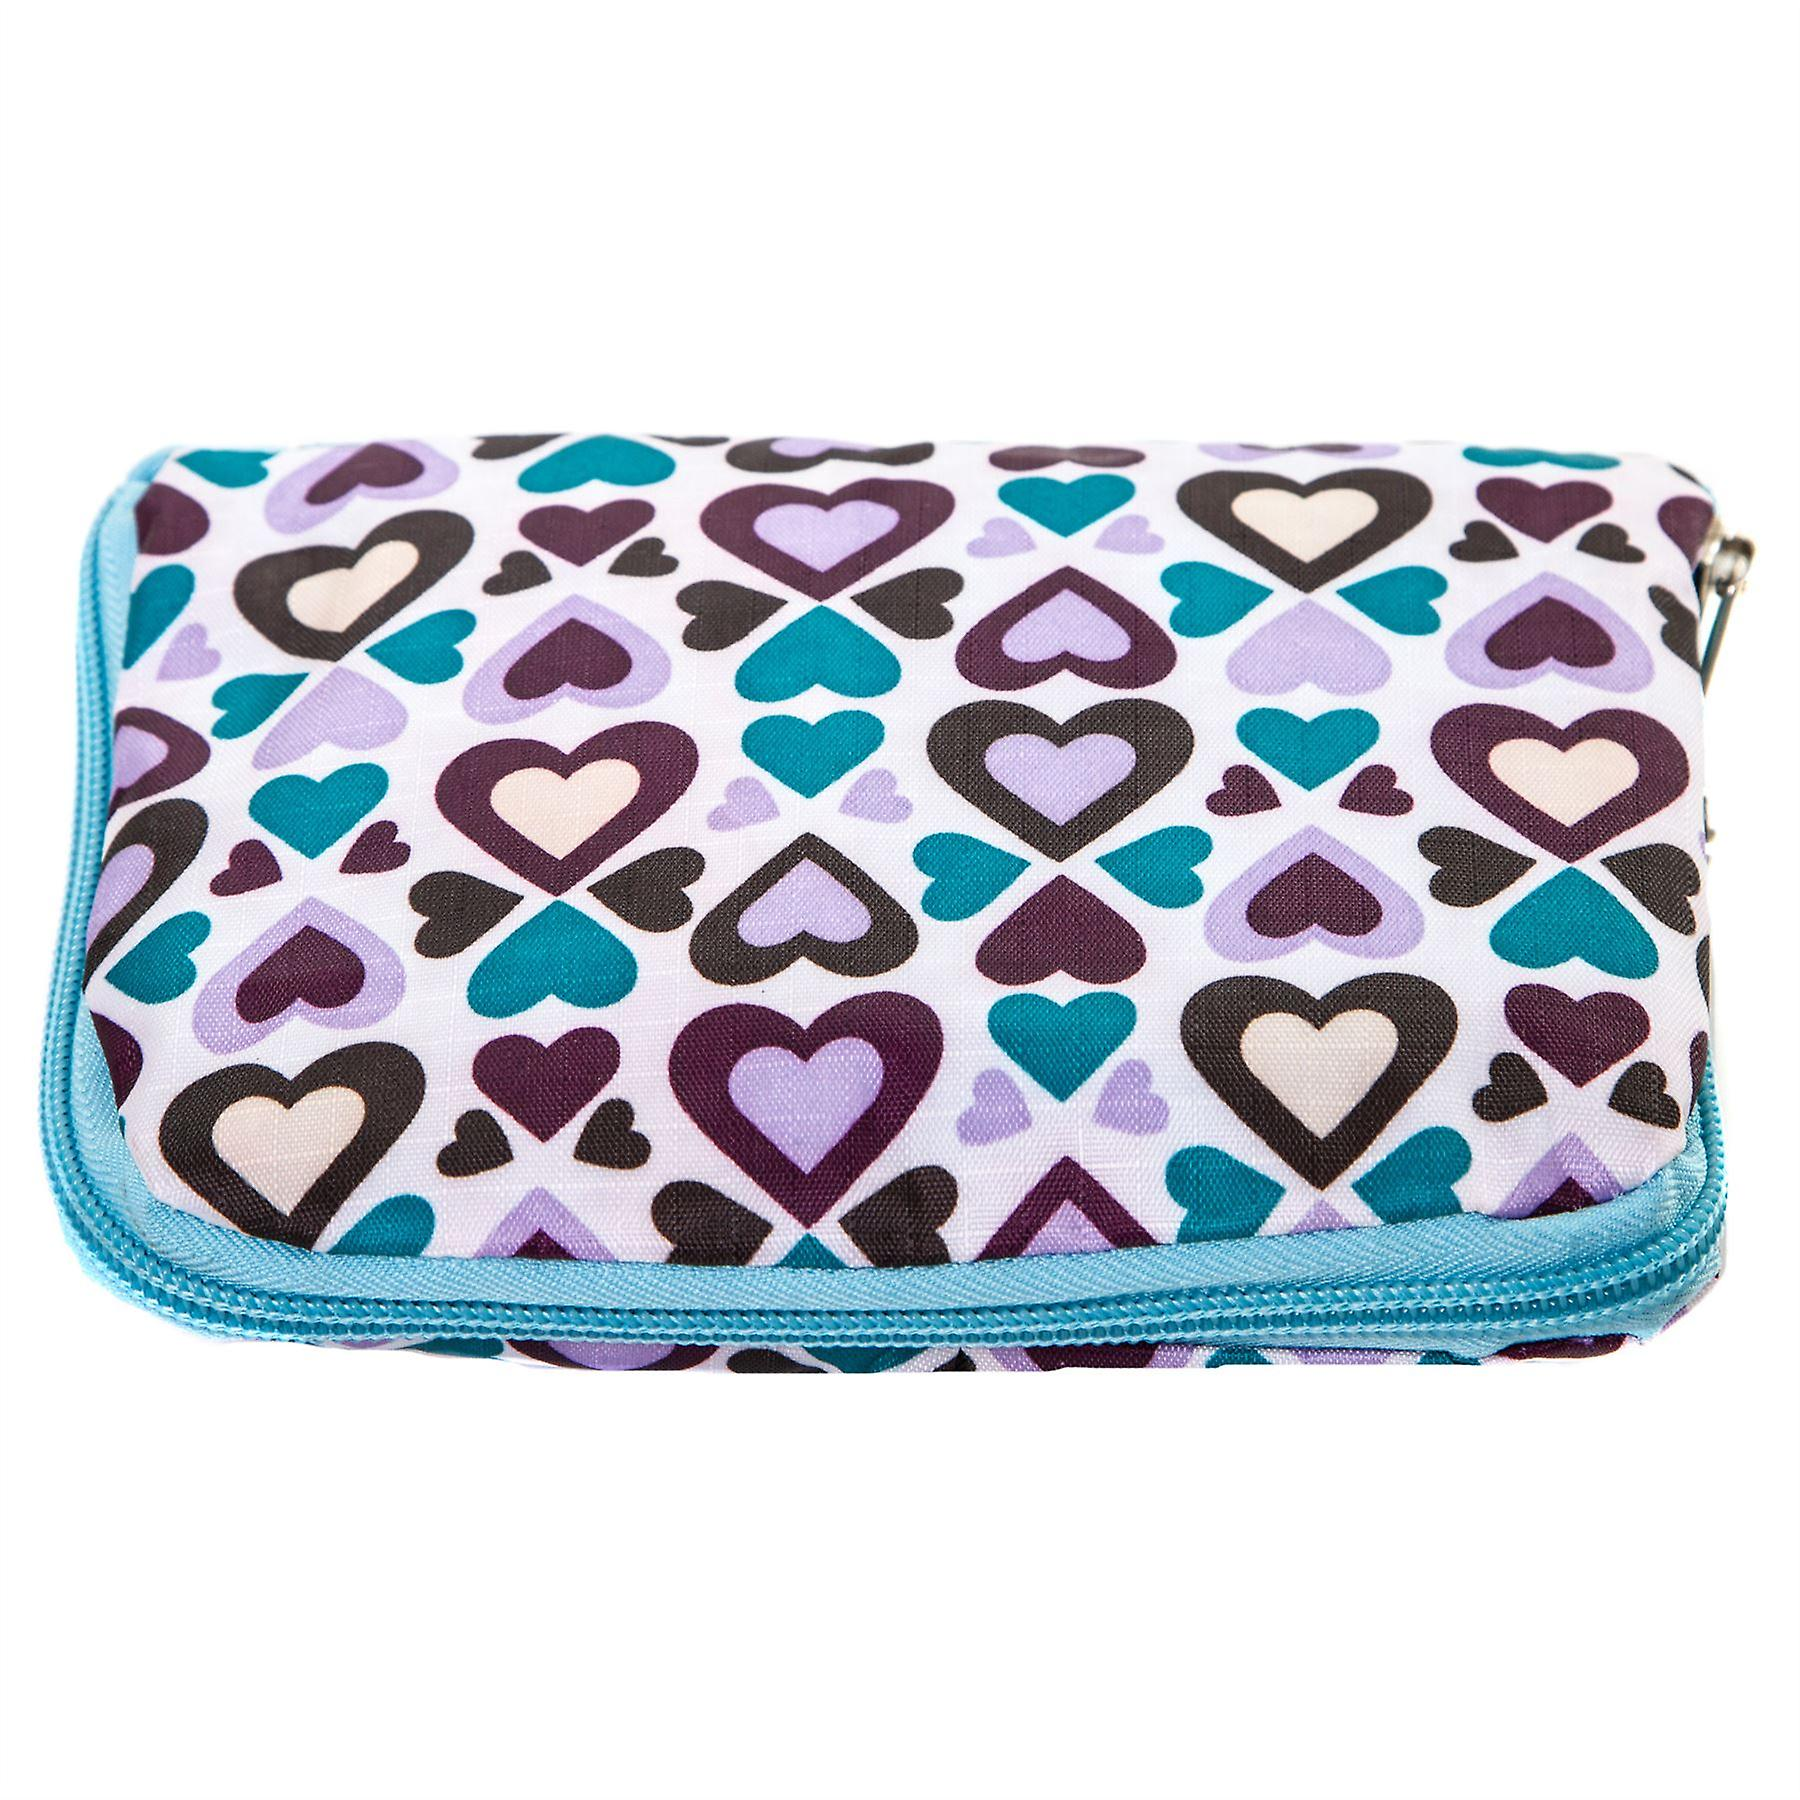 Very Lovely Bags Co. Fold Away Mini Shopper - Queen of Hearts